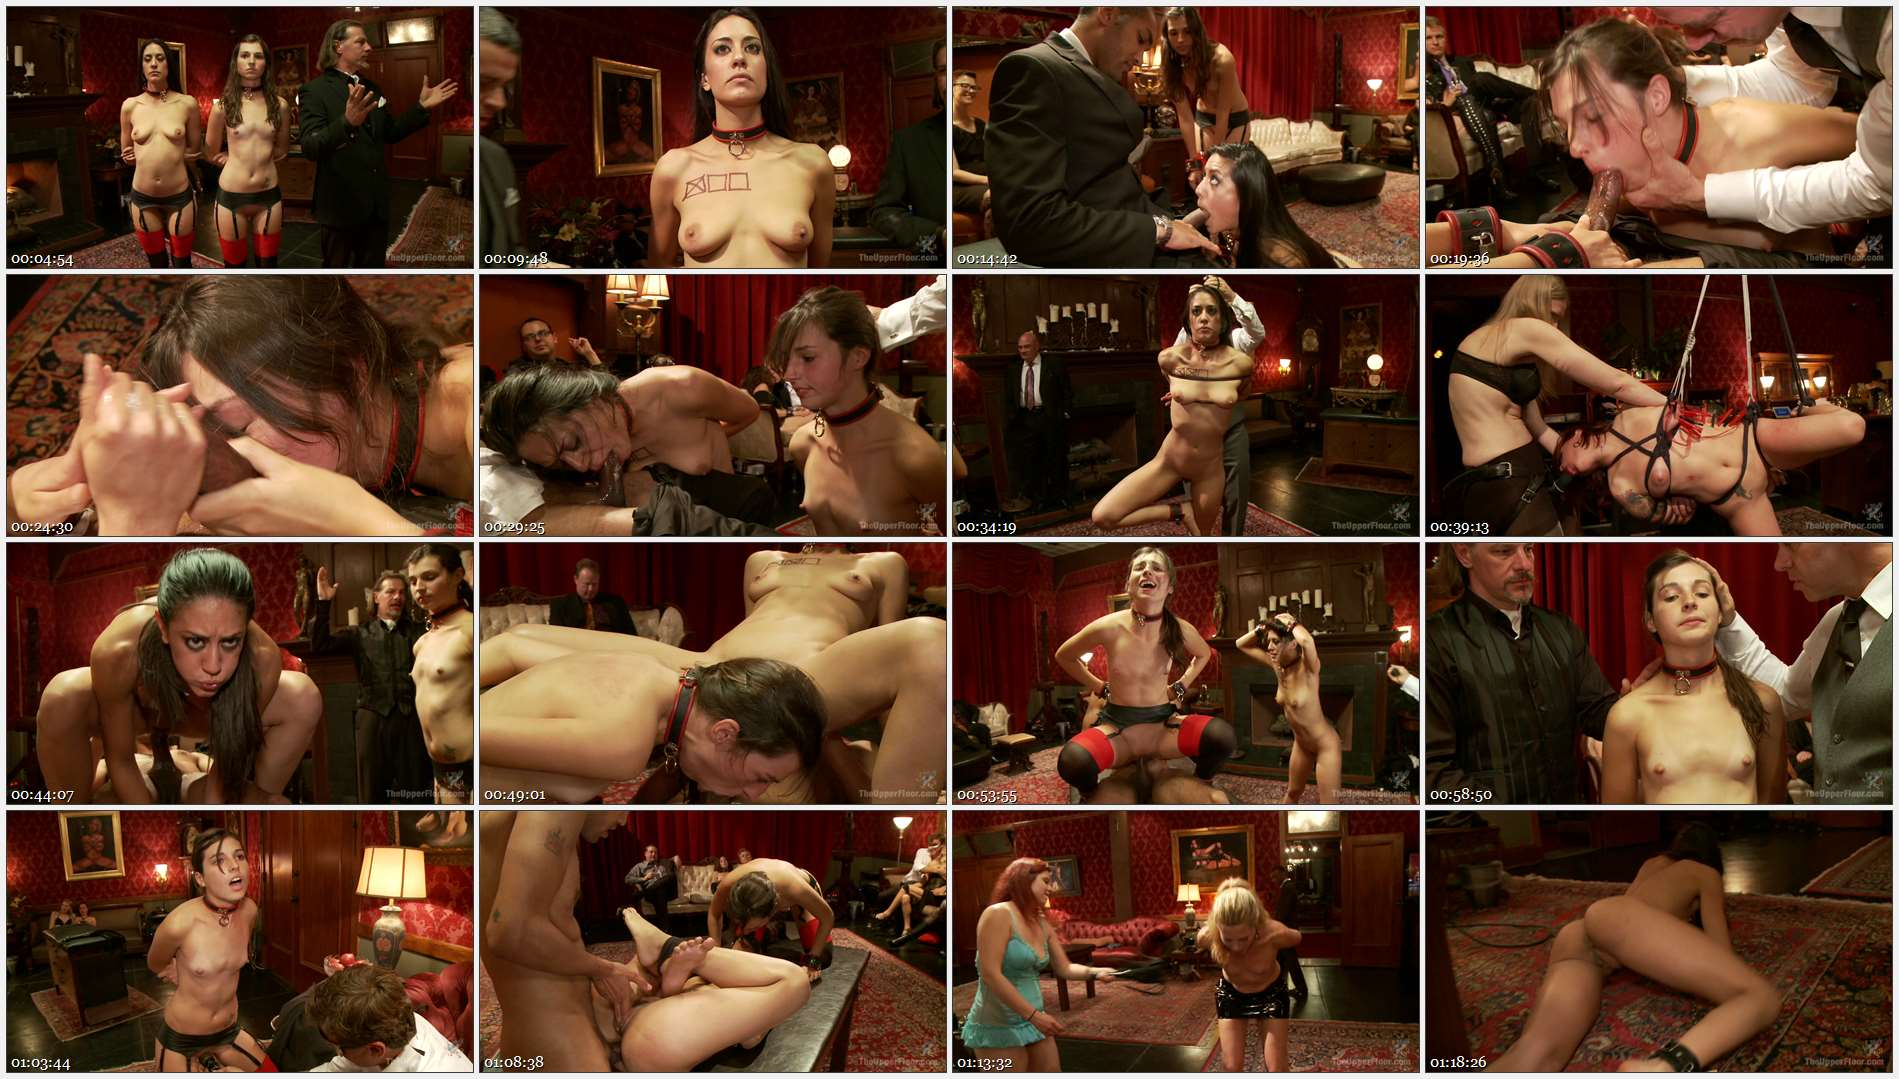 Mickey Mod – Kristine Kahill – Lyla Storm – Anal Punishment and Demotion of a House Slave